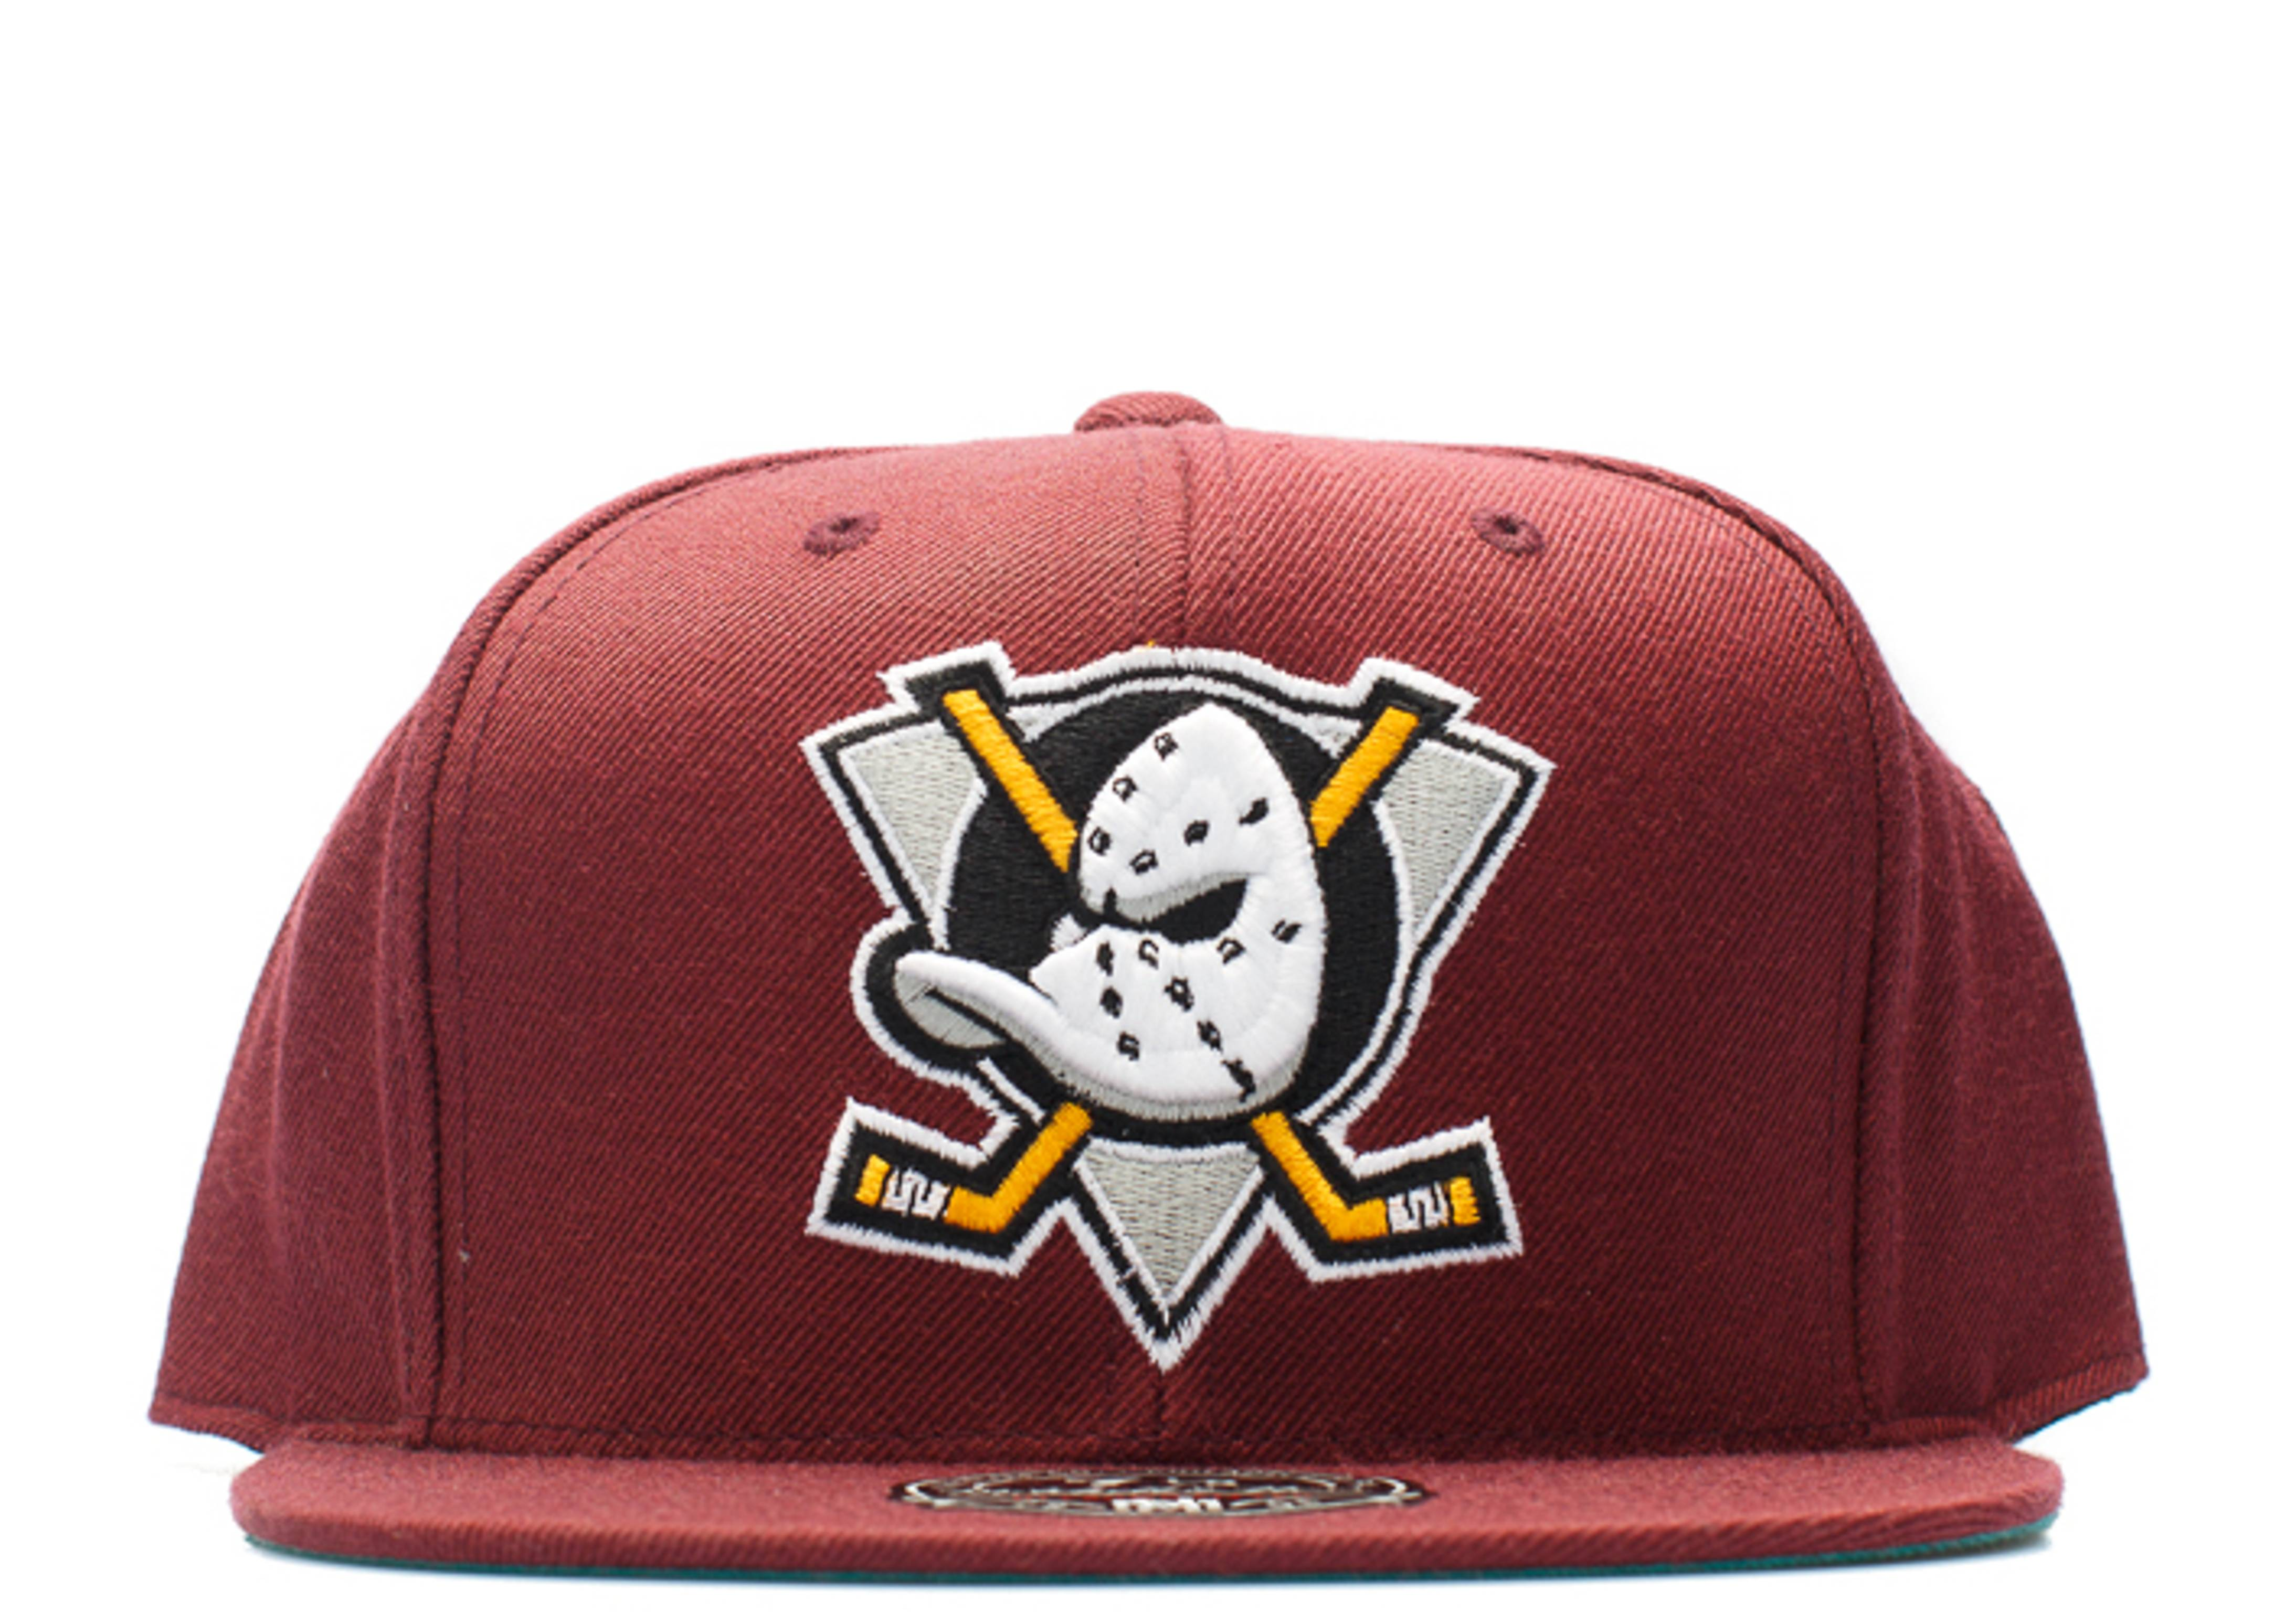 anaheim mighty ducks fitted